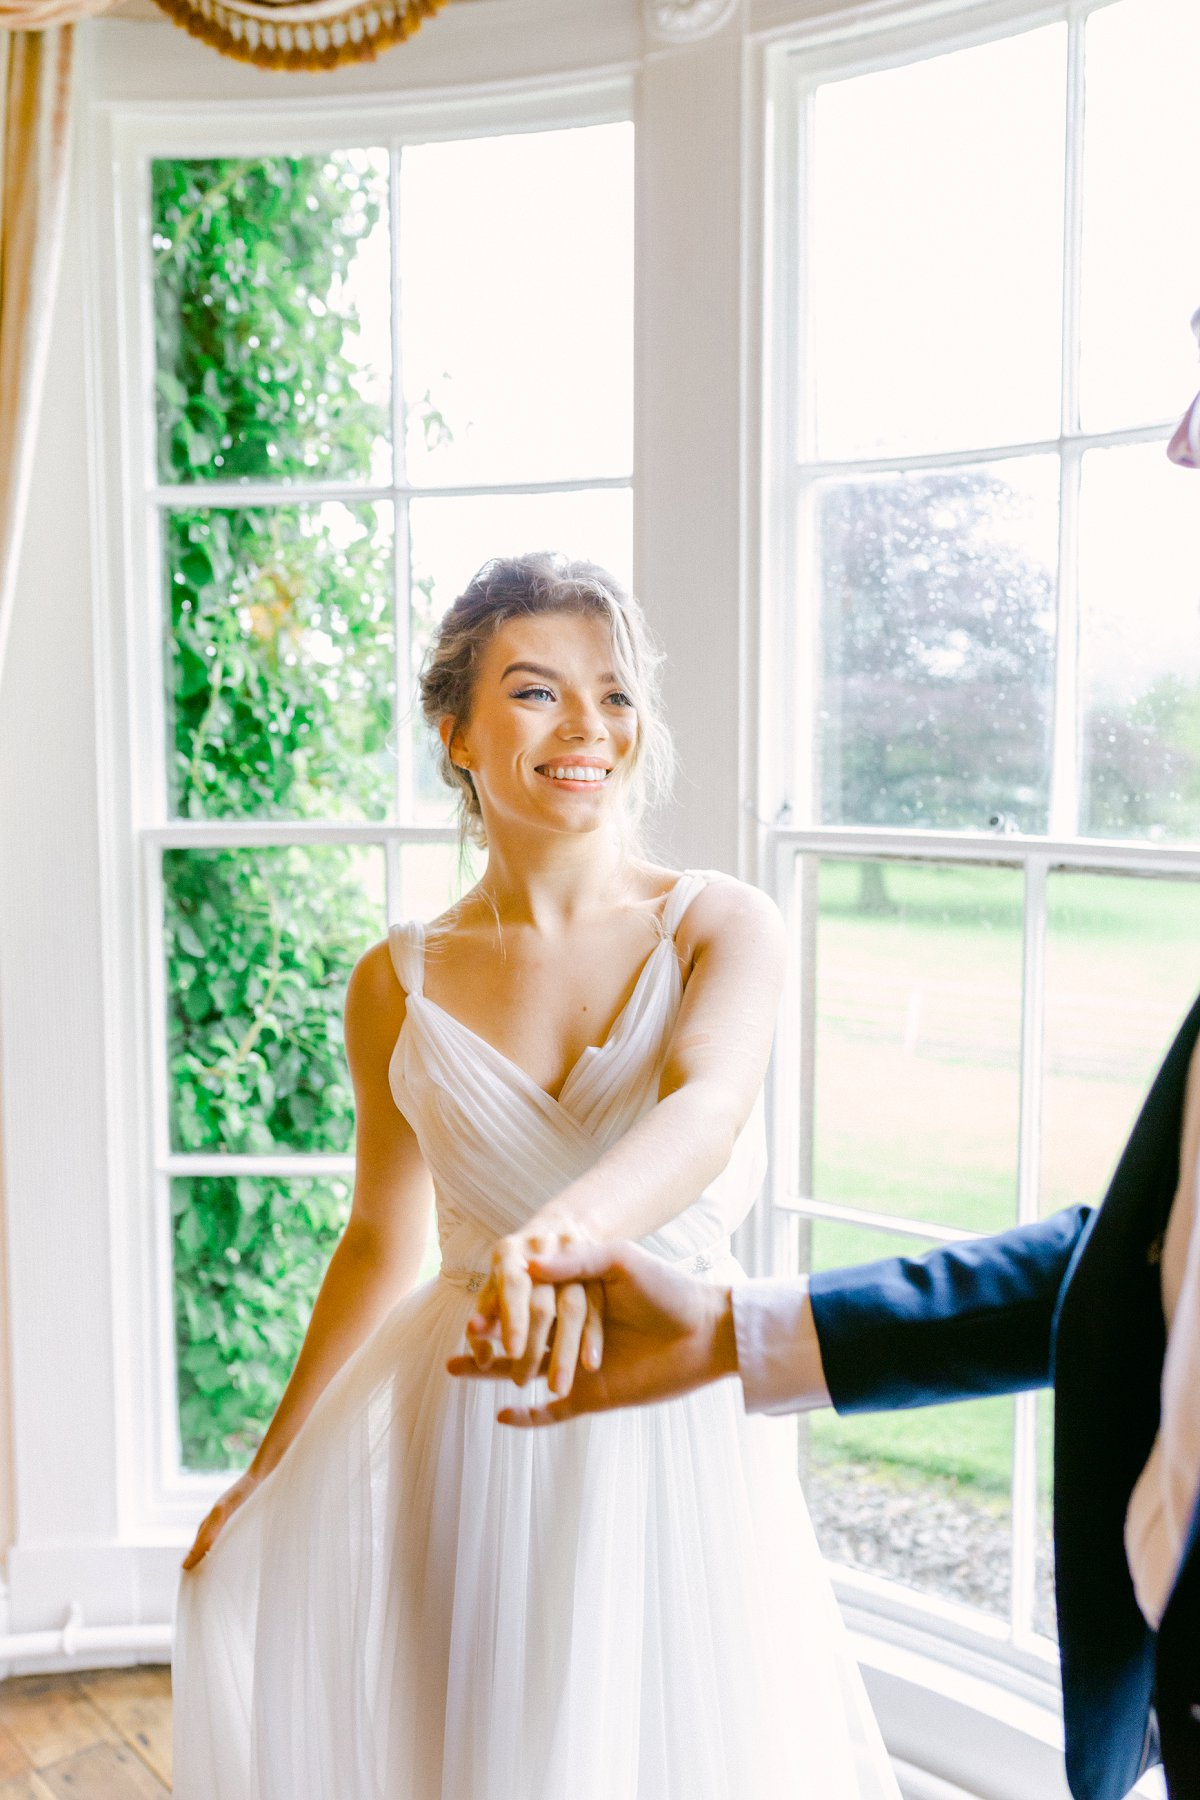 A Styled Wedding Shoot at Town Head Estate Windermere (c) Ailsa Reeve Photography (7)